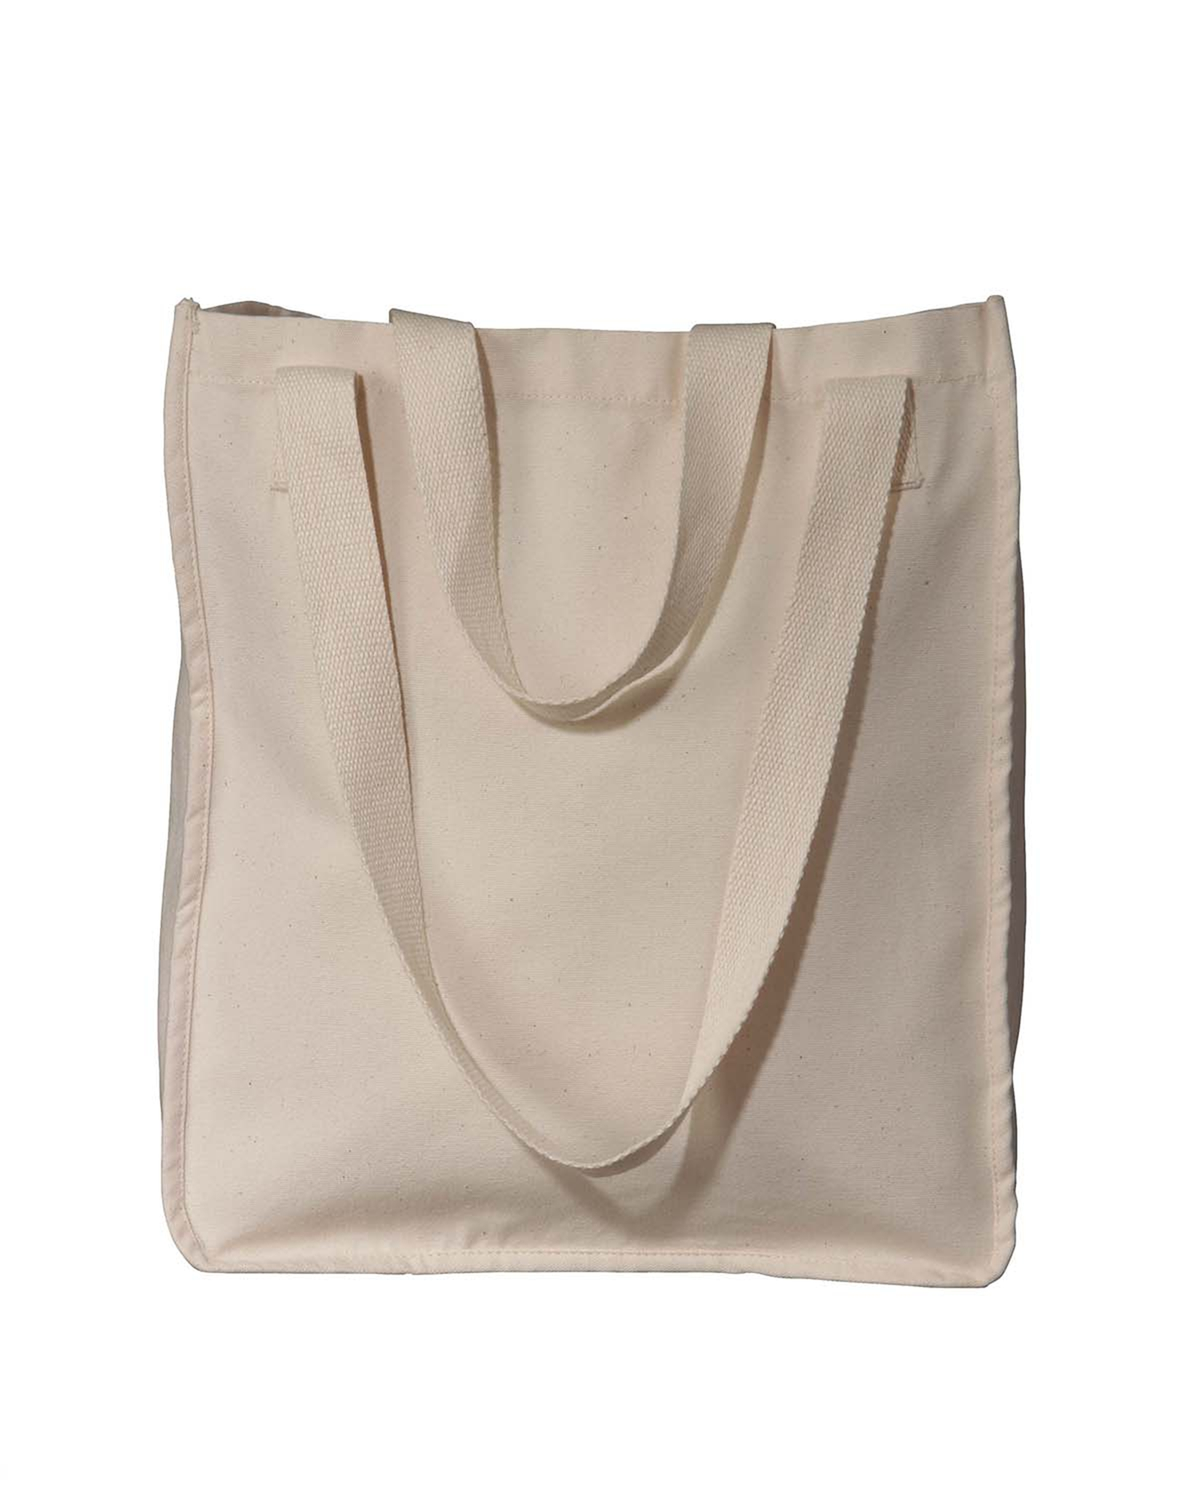 econscious EC8040 - 9 oz. Organic Cotton Canvas Market Tote